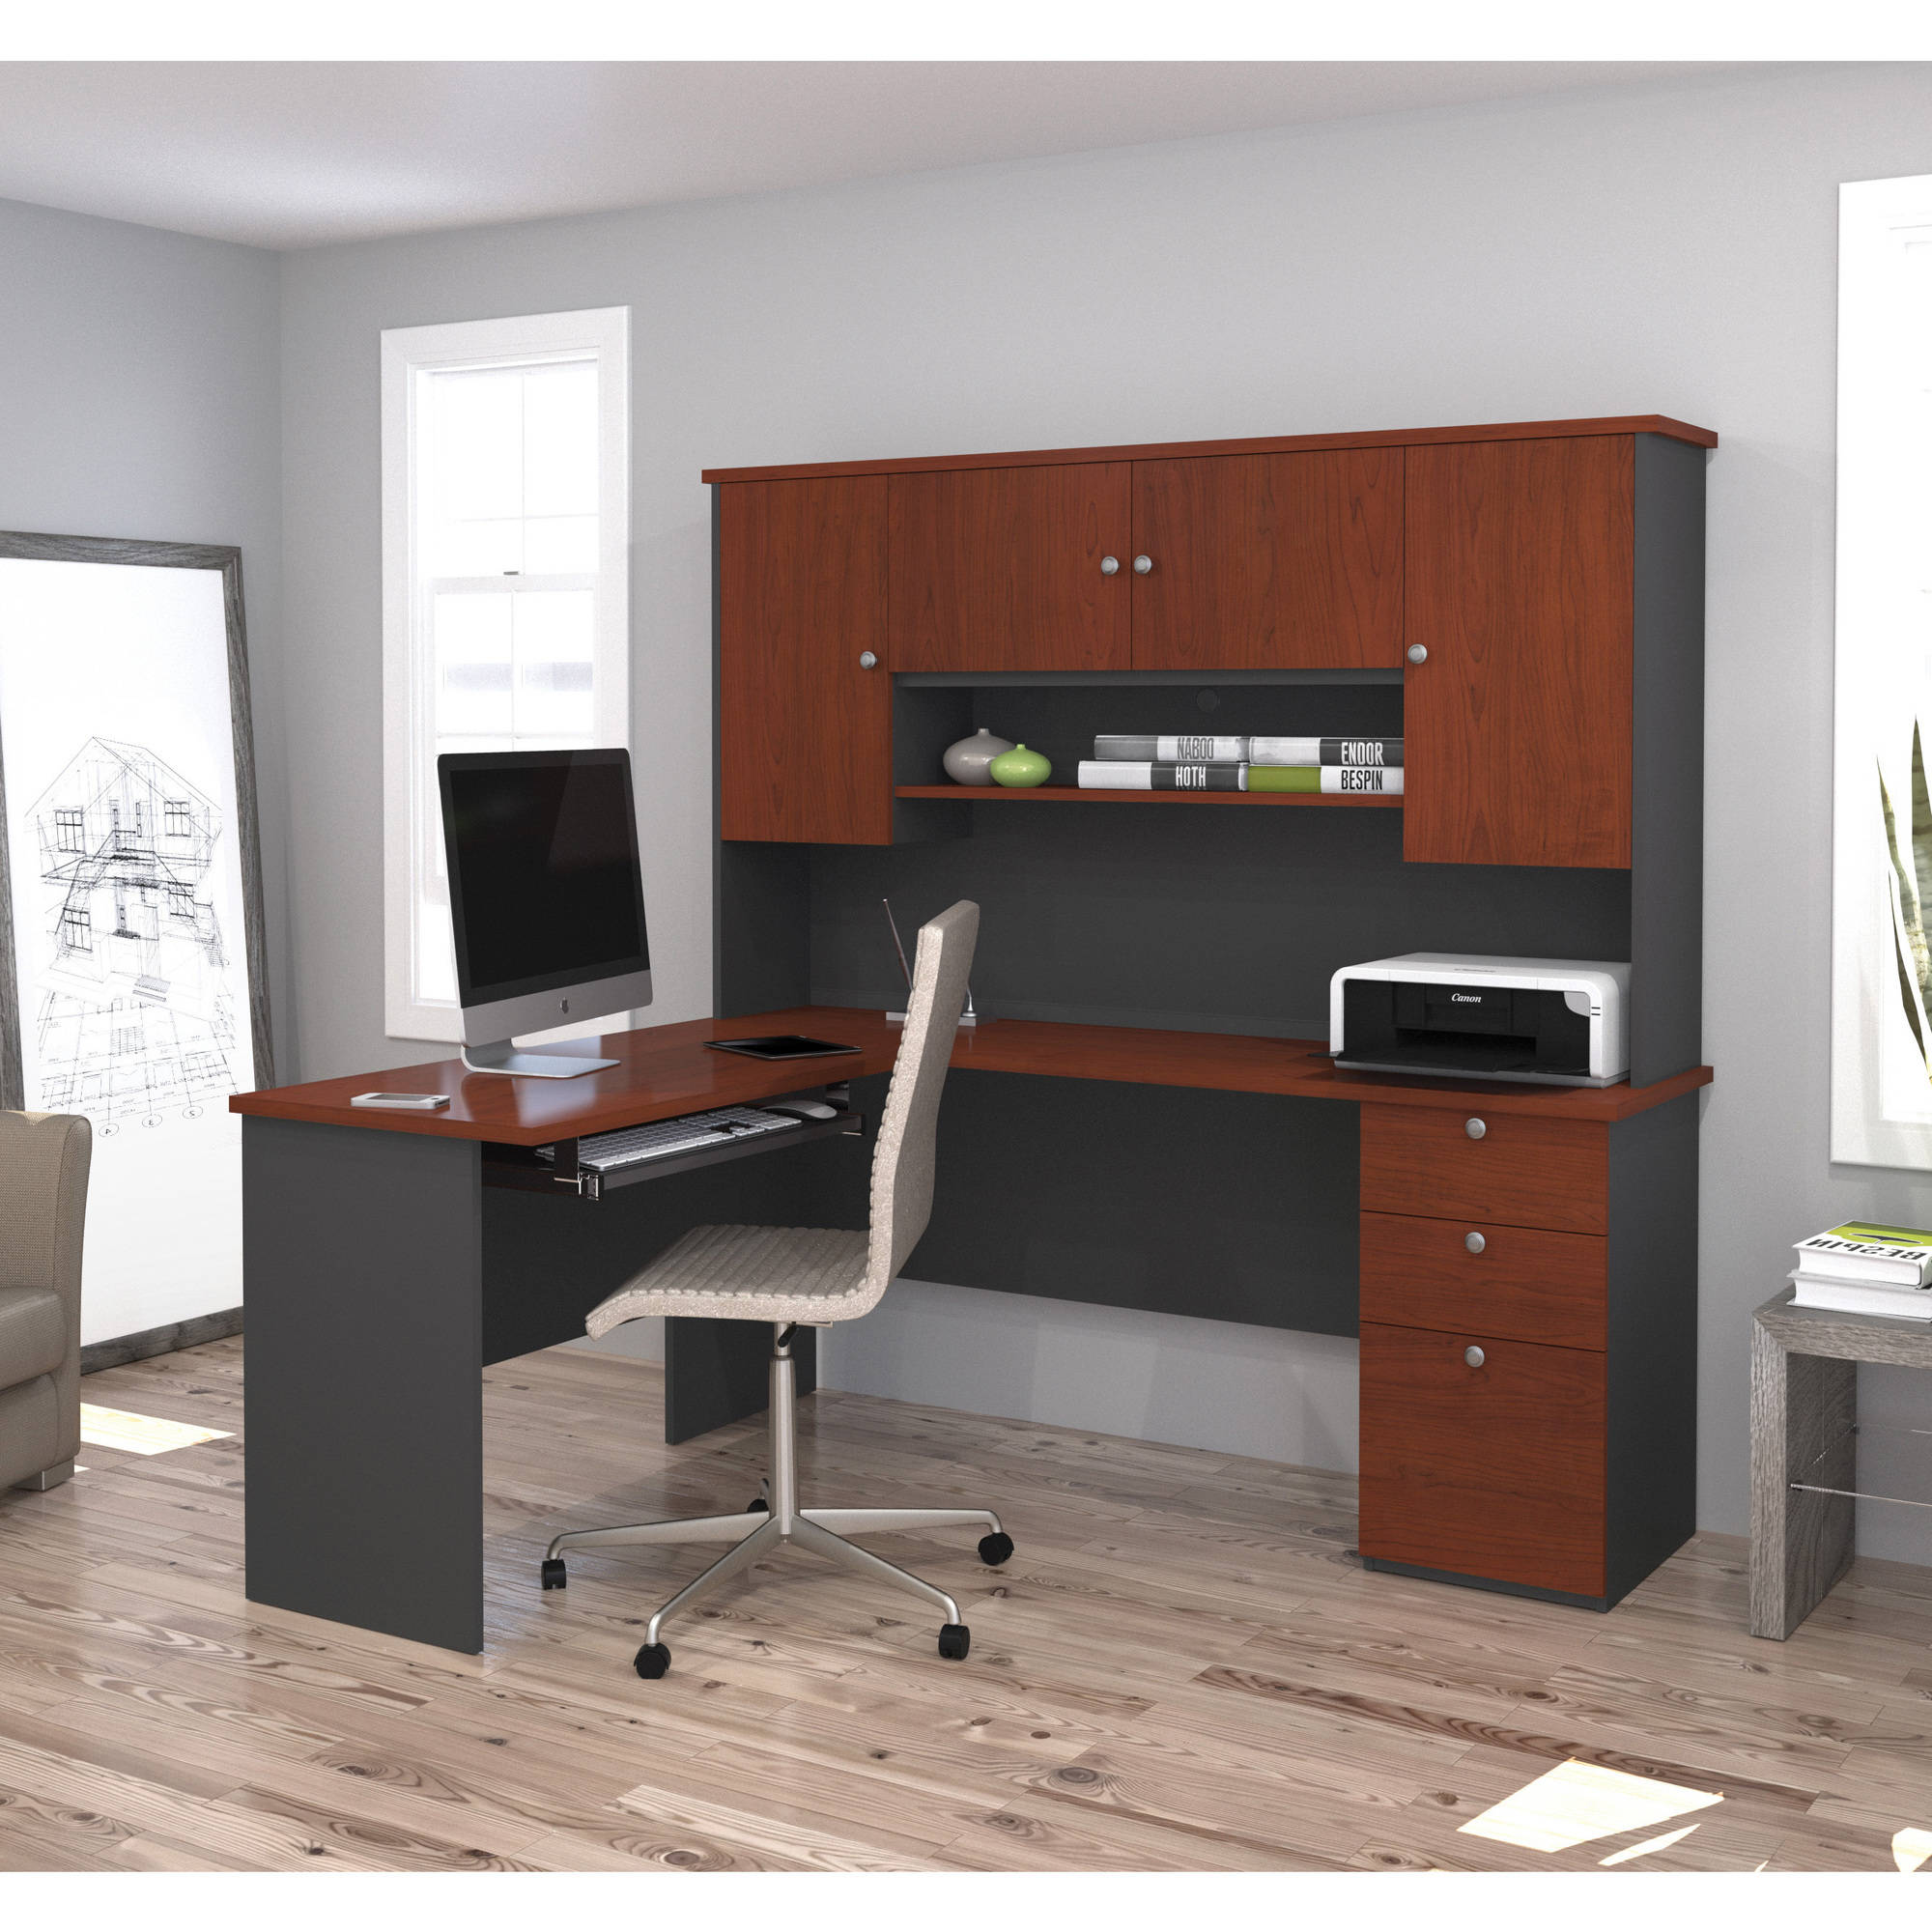 Bestar Manhattan L-shaped Workstation, Bordeaux & Graphite